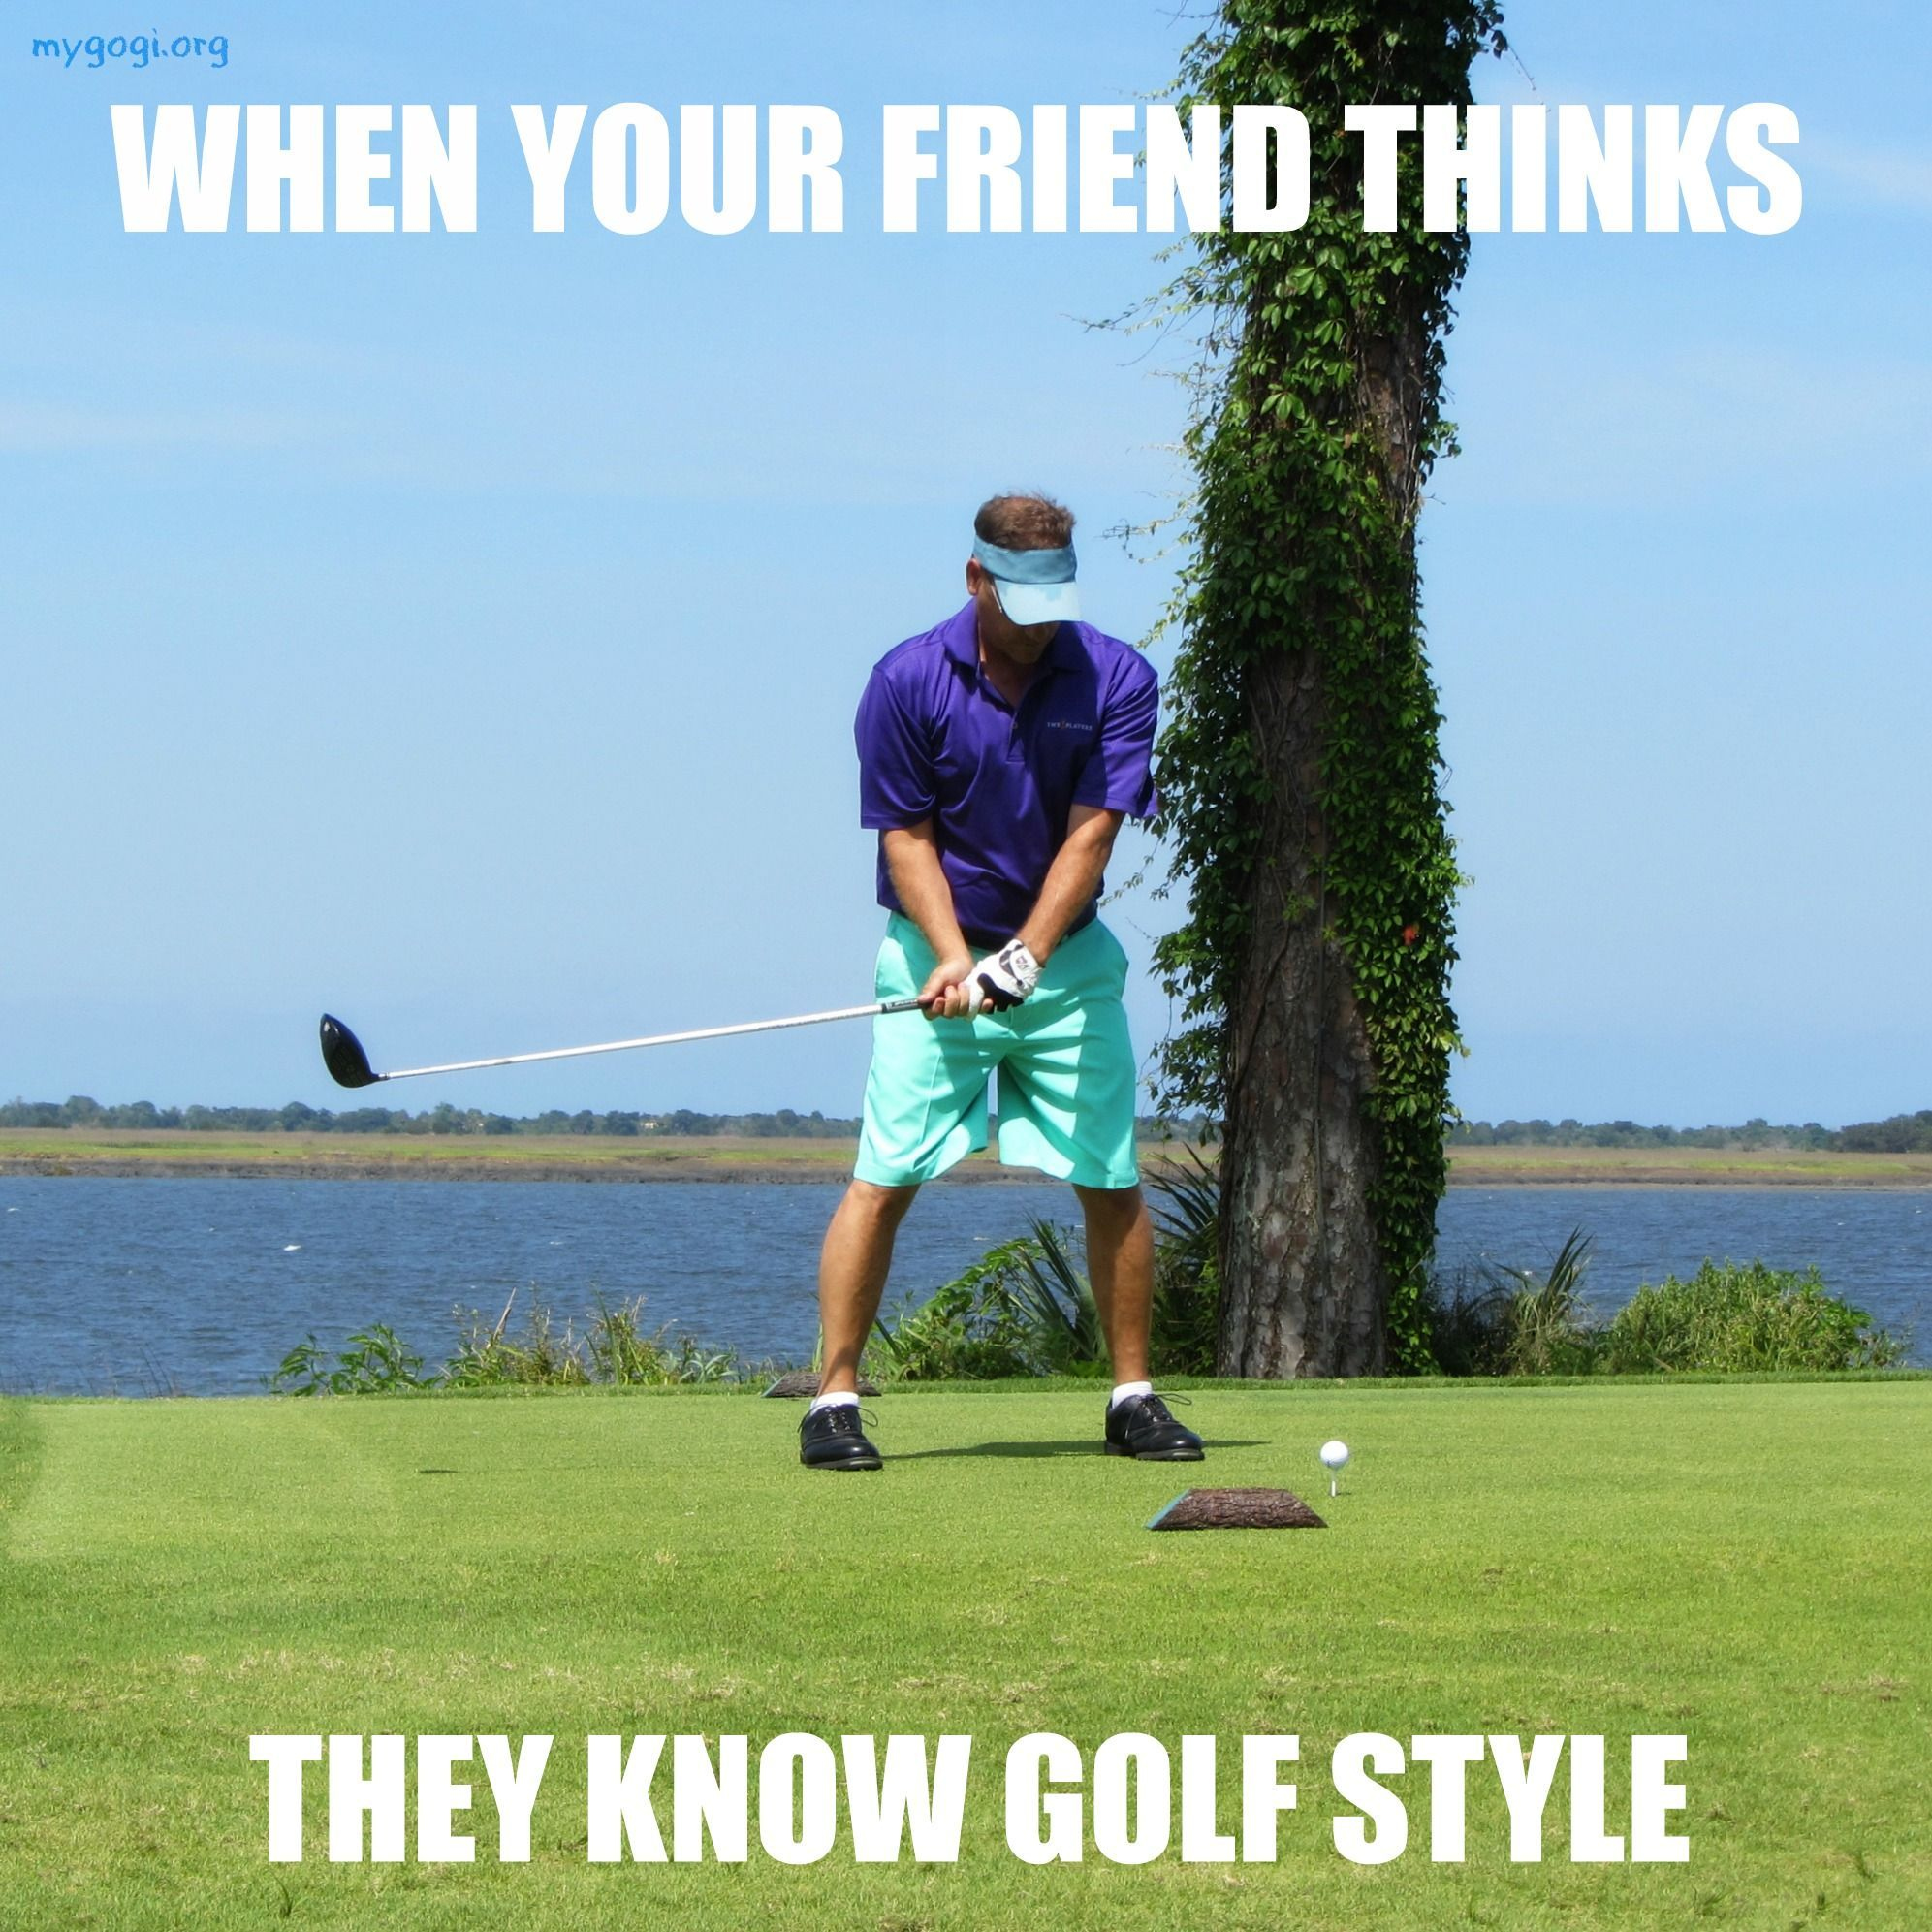 Or The Rules For That Matter Golf Funny Humor Jokes Golfing Life Meme Golfjokes Golf Humor Golf Rules Golf Quotes Funny